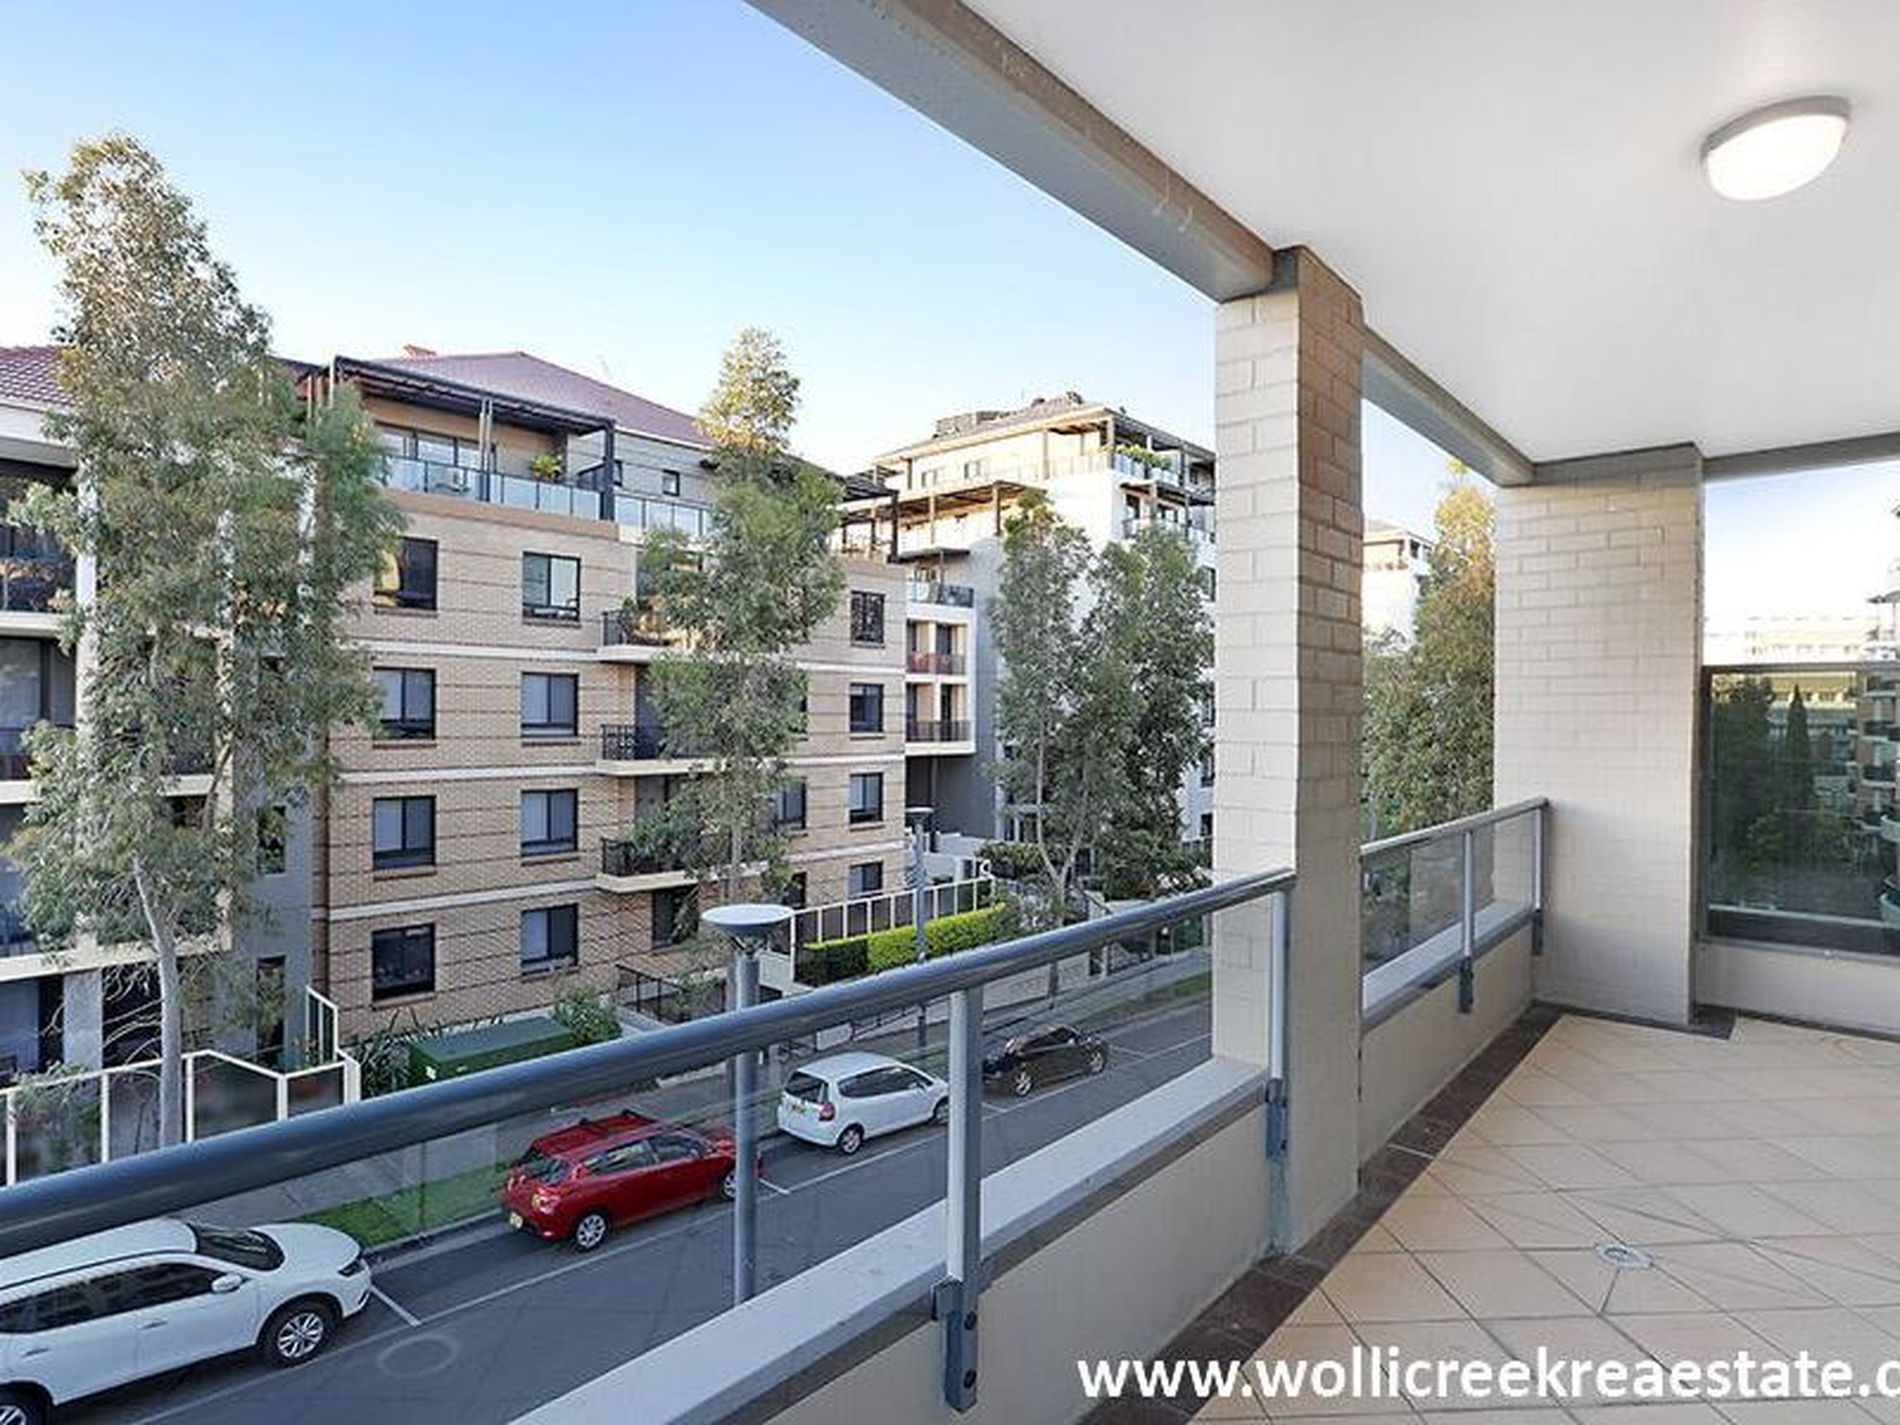 66 / 95 Bonar Street, Wolli Creek